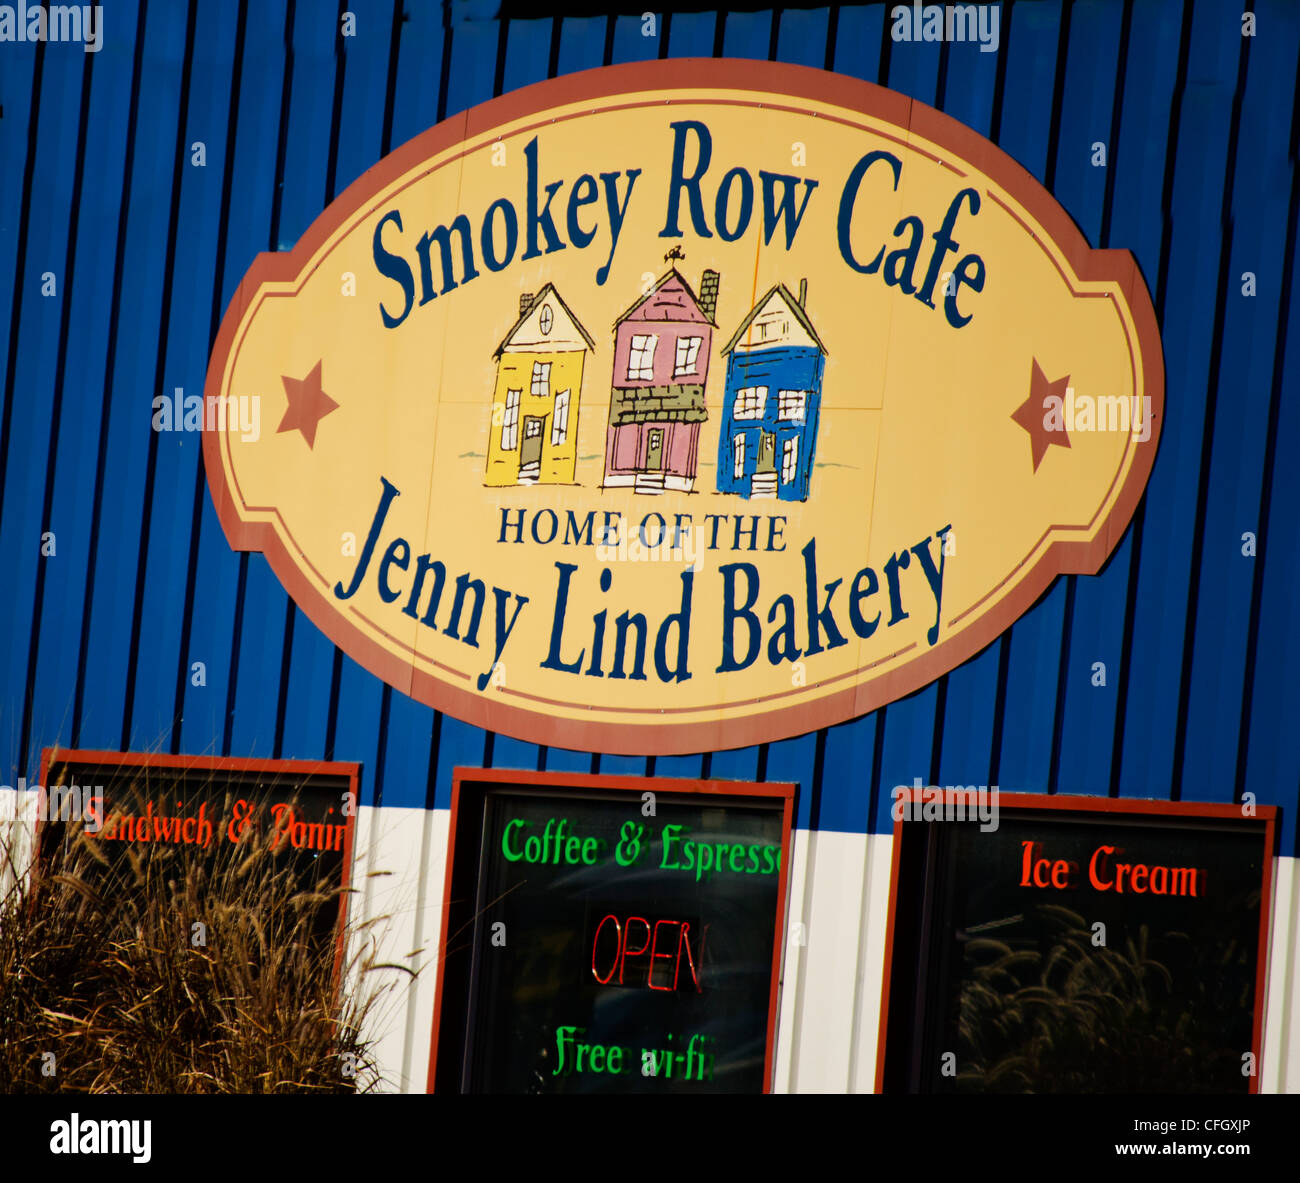 Smokey Row Cafe and Jenny Lind Bakery is a popular restaurant and bakery in Red Wing, Minnesota. - Stock Image